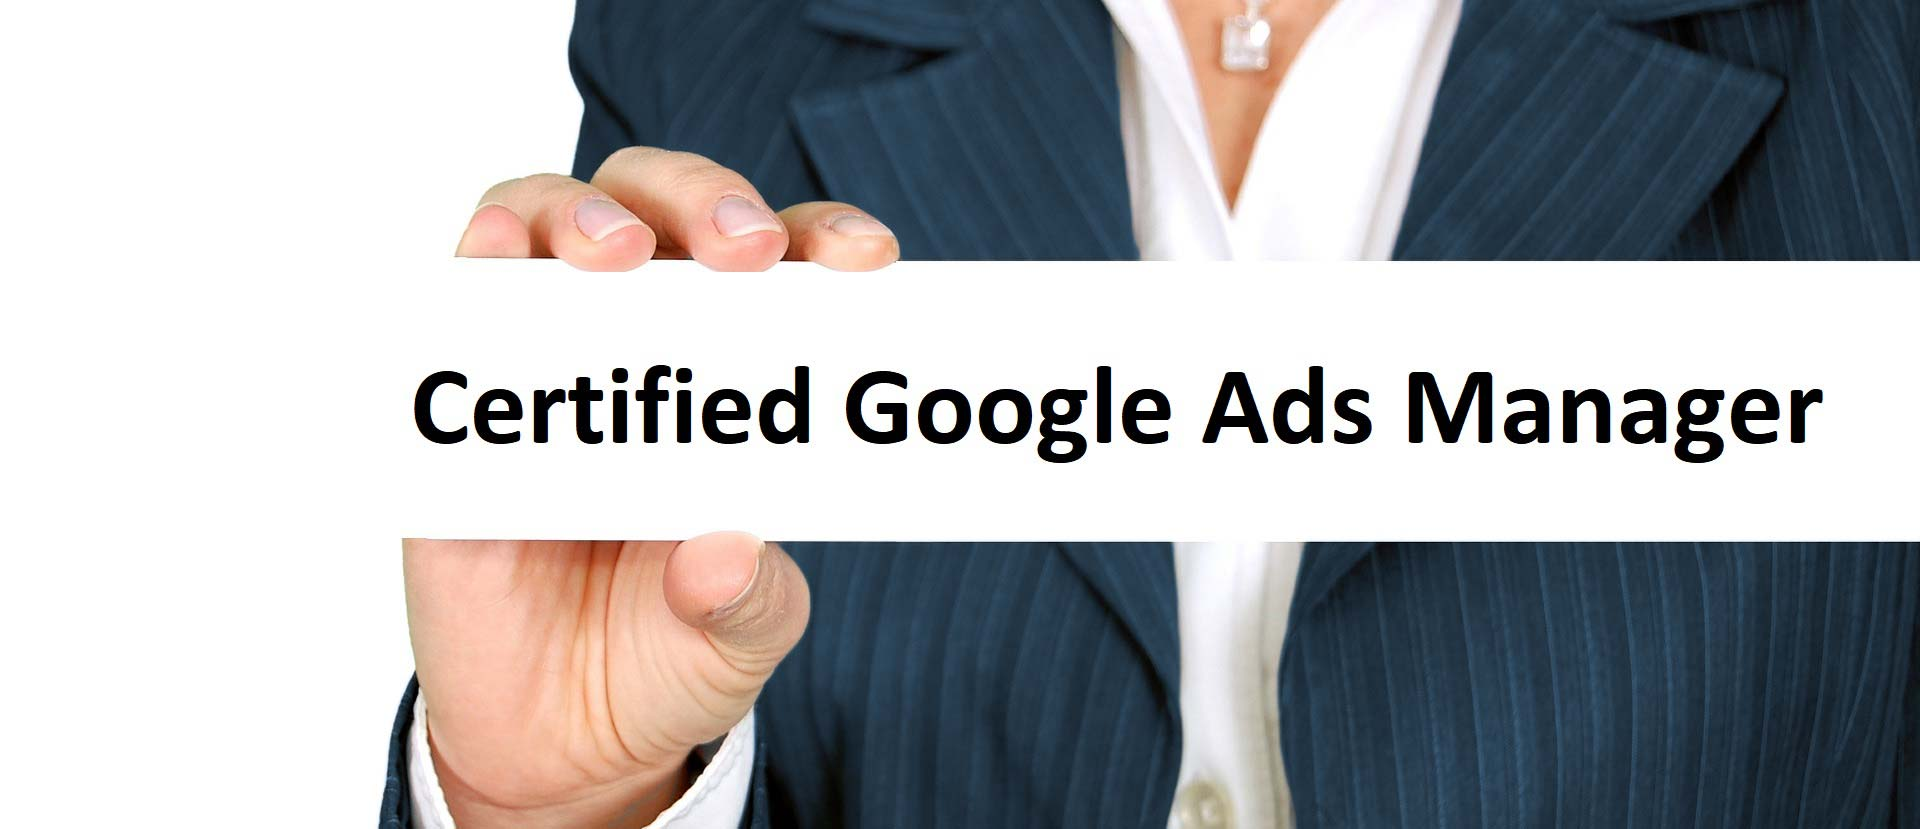 Certified Google Ads Manager